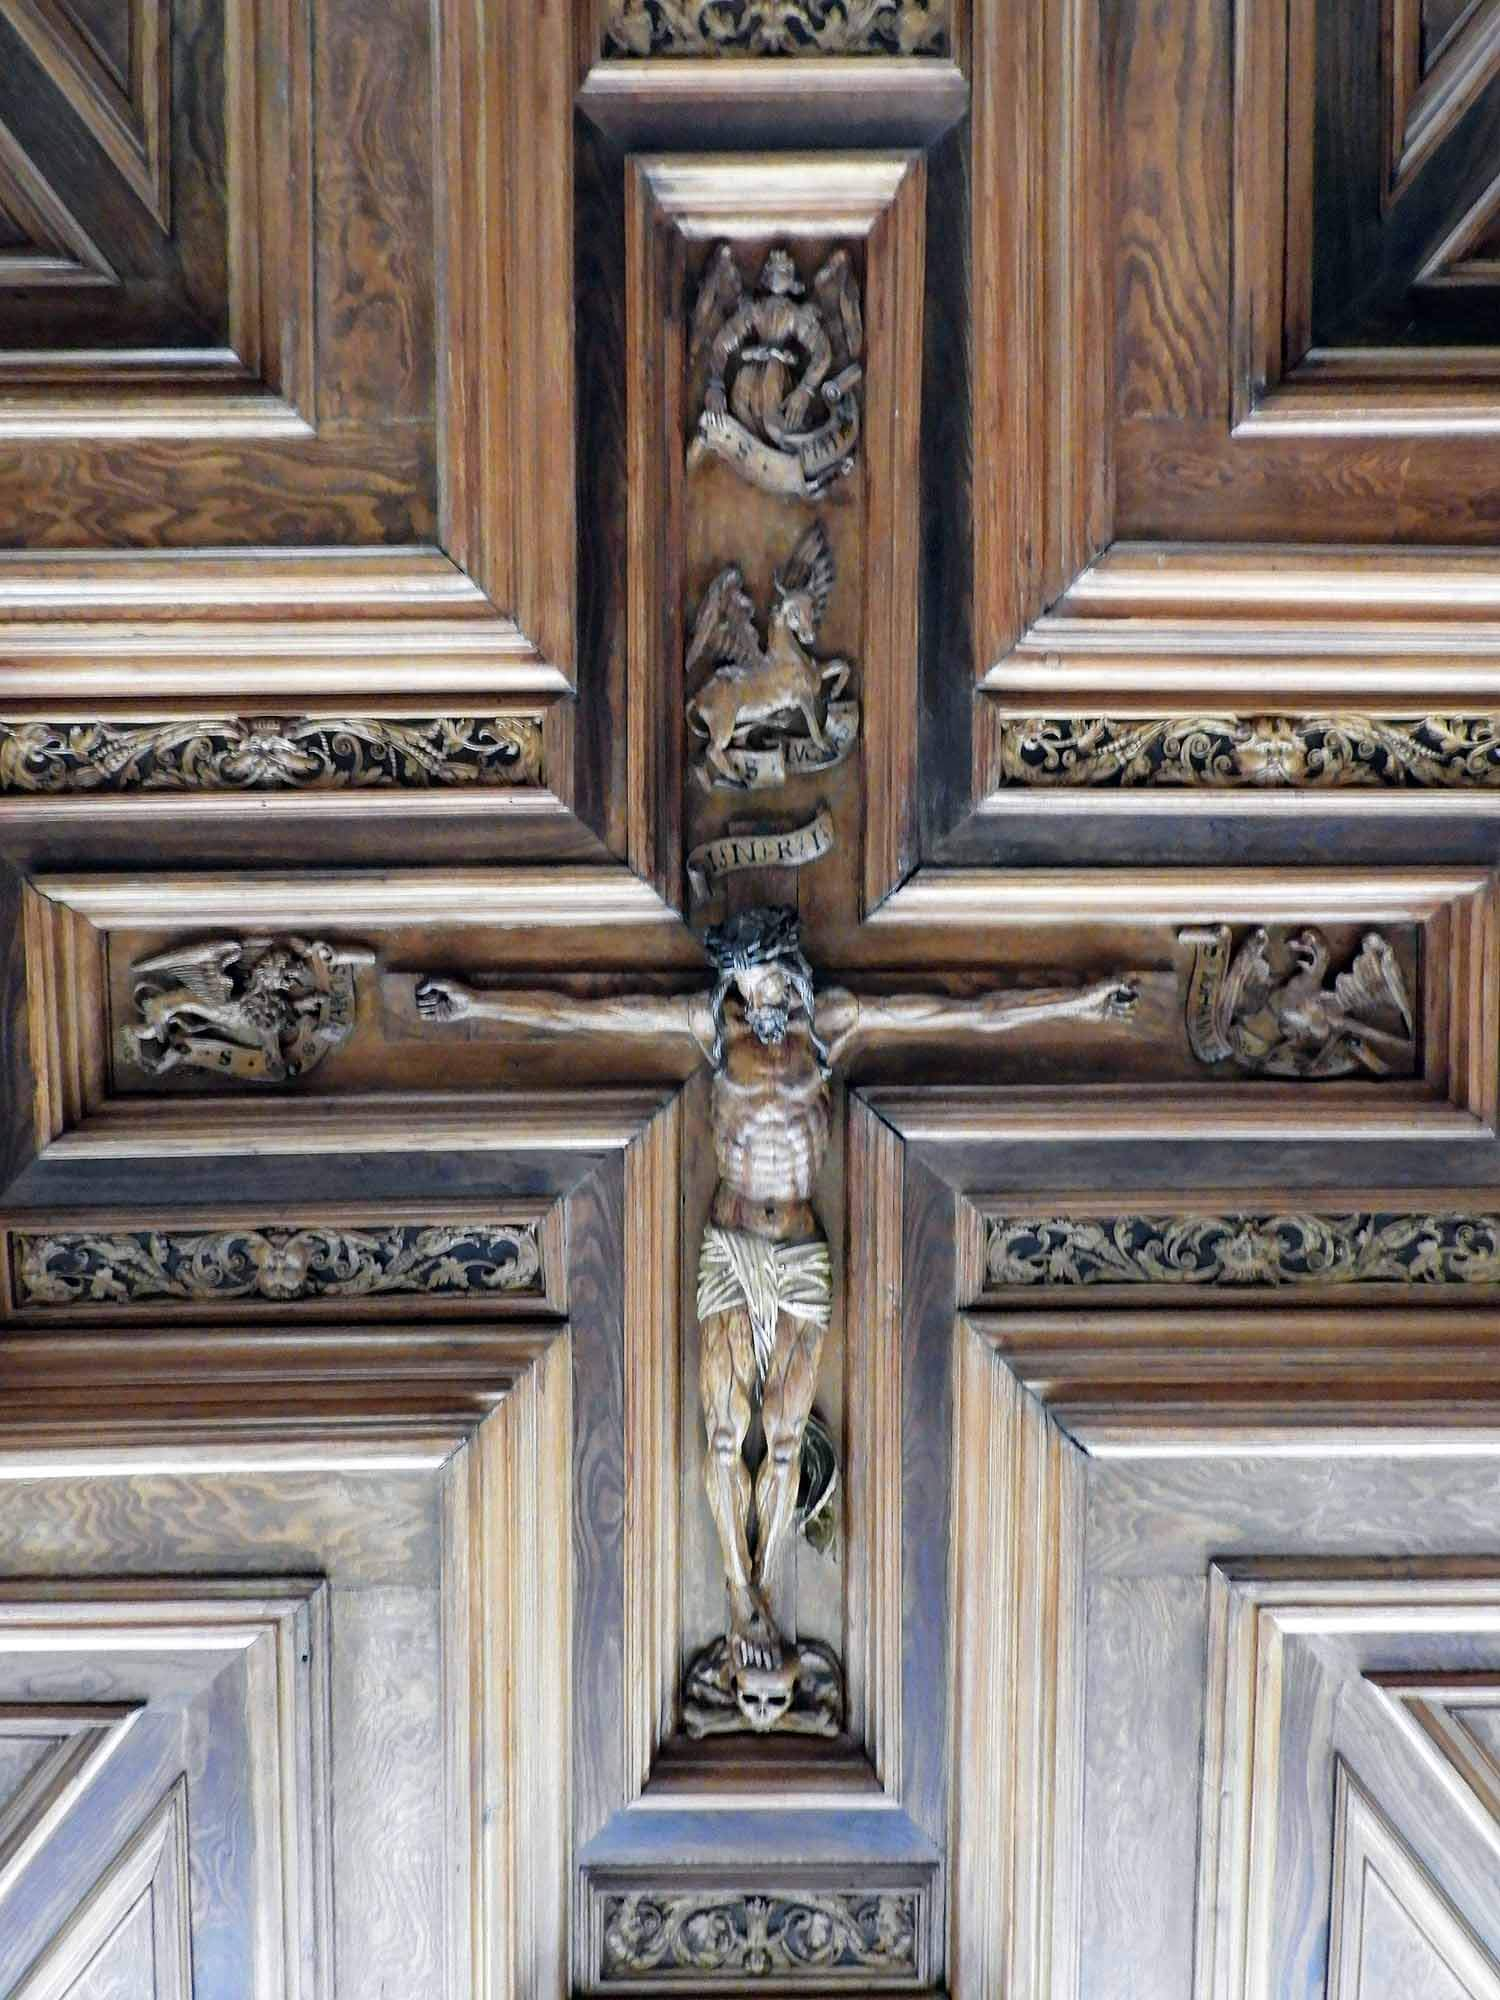 germany-kloster-ochsenhausen-ceiling-panel-wood-carving-crucifix.jpg